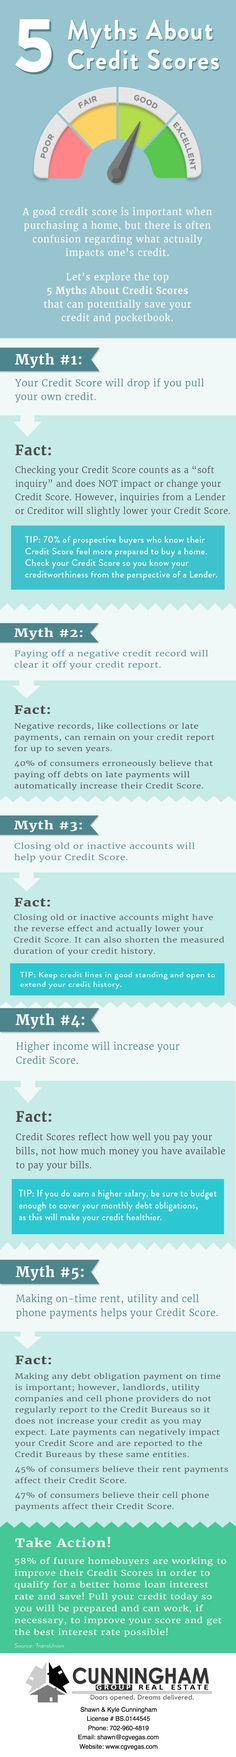 5 Myths About Your Credit Score - The first step in buying a home.